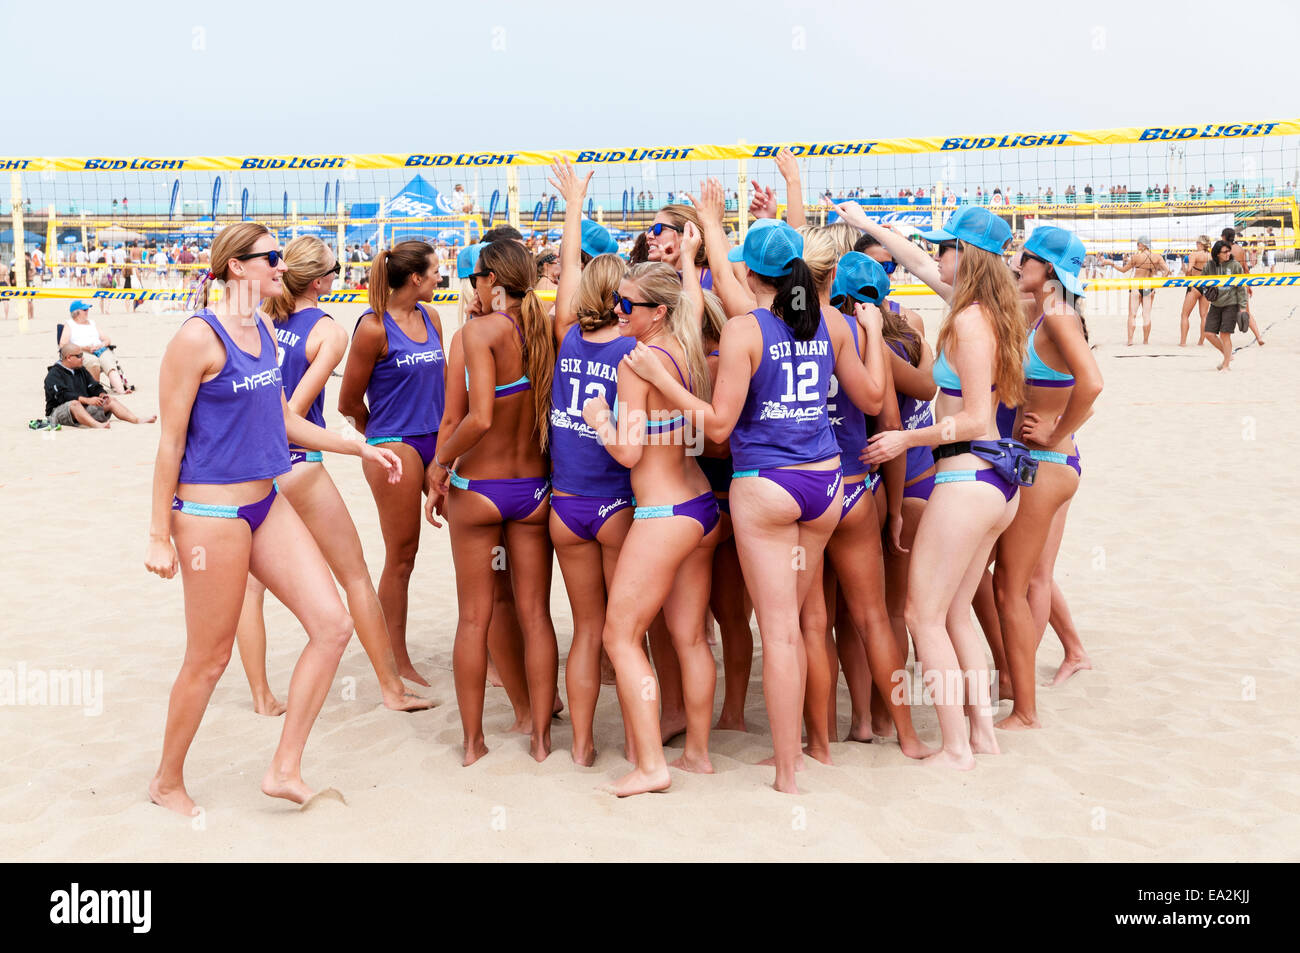 California, Los Angeles County, Manhattan Beach, International Surf Festival, Six-Woman Beach Volleyball Team - Stock Image